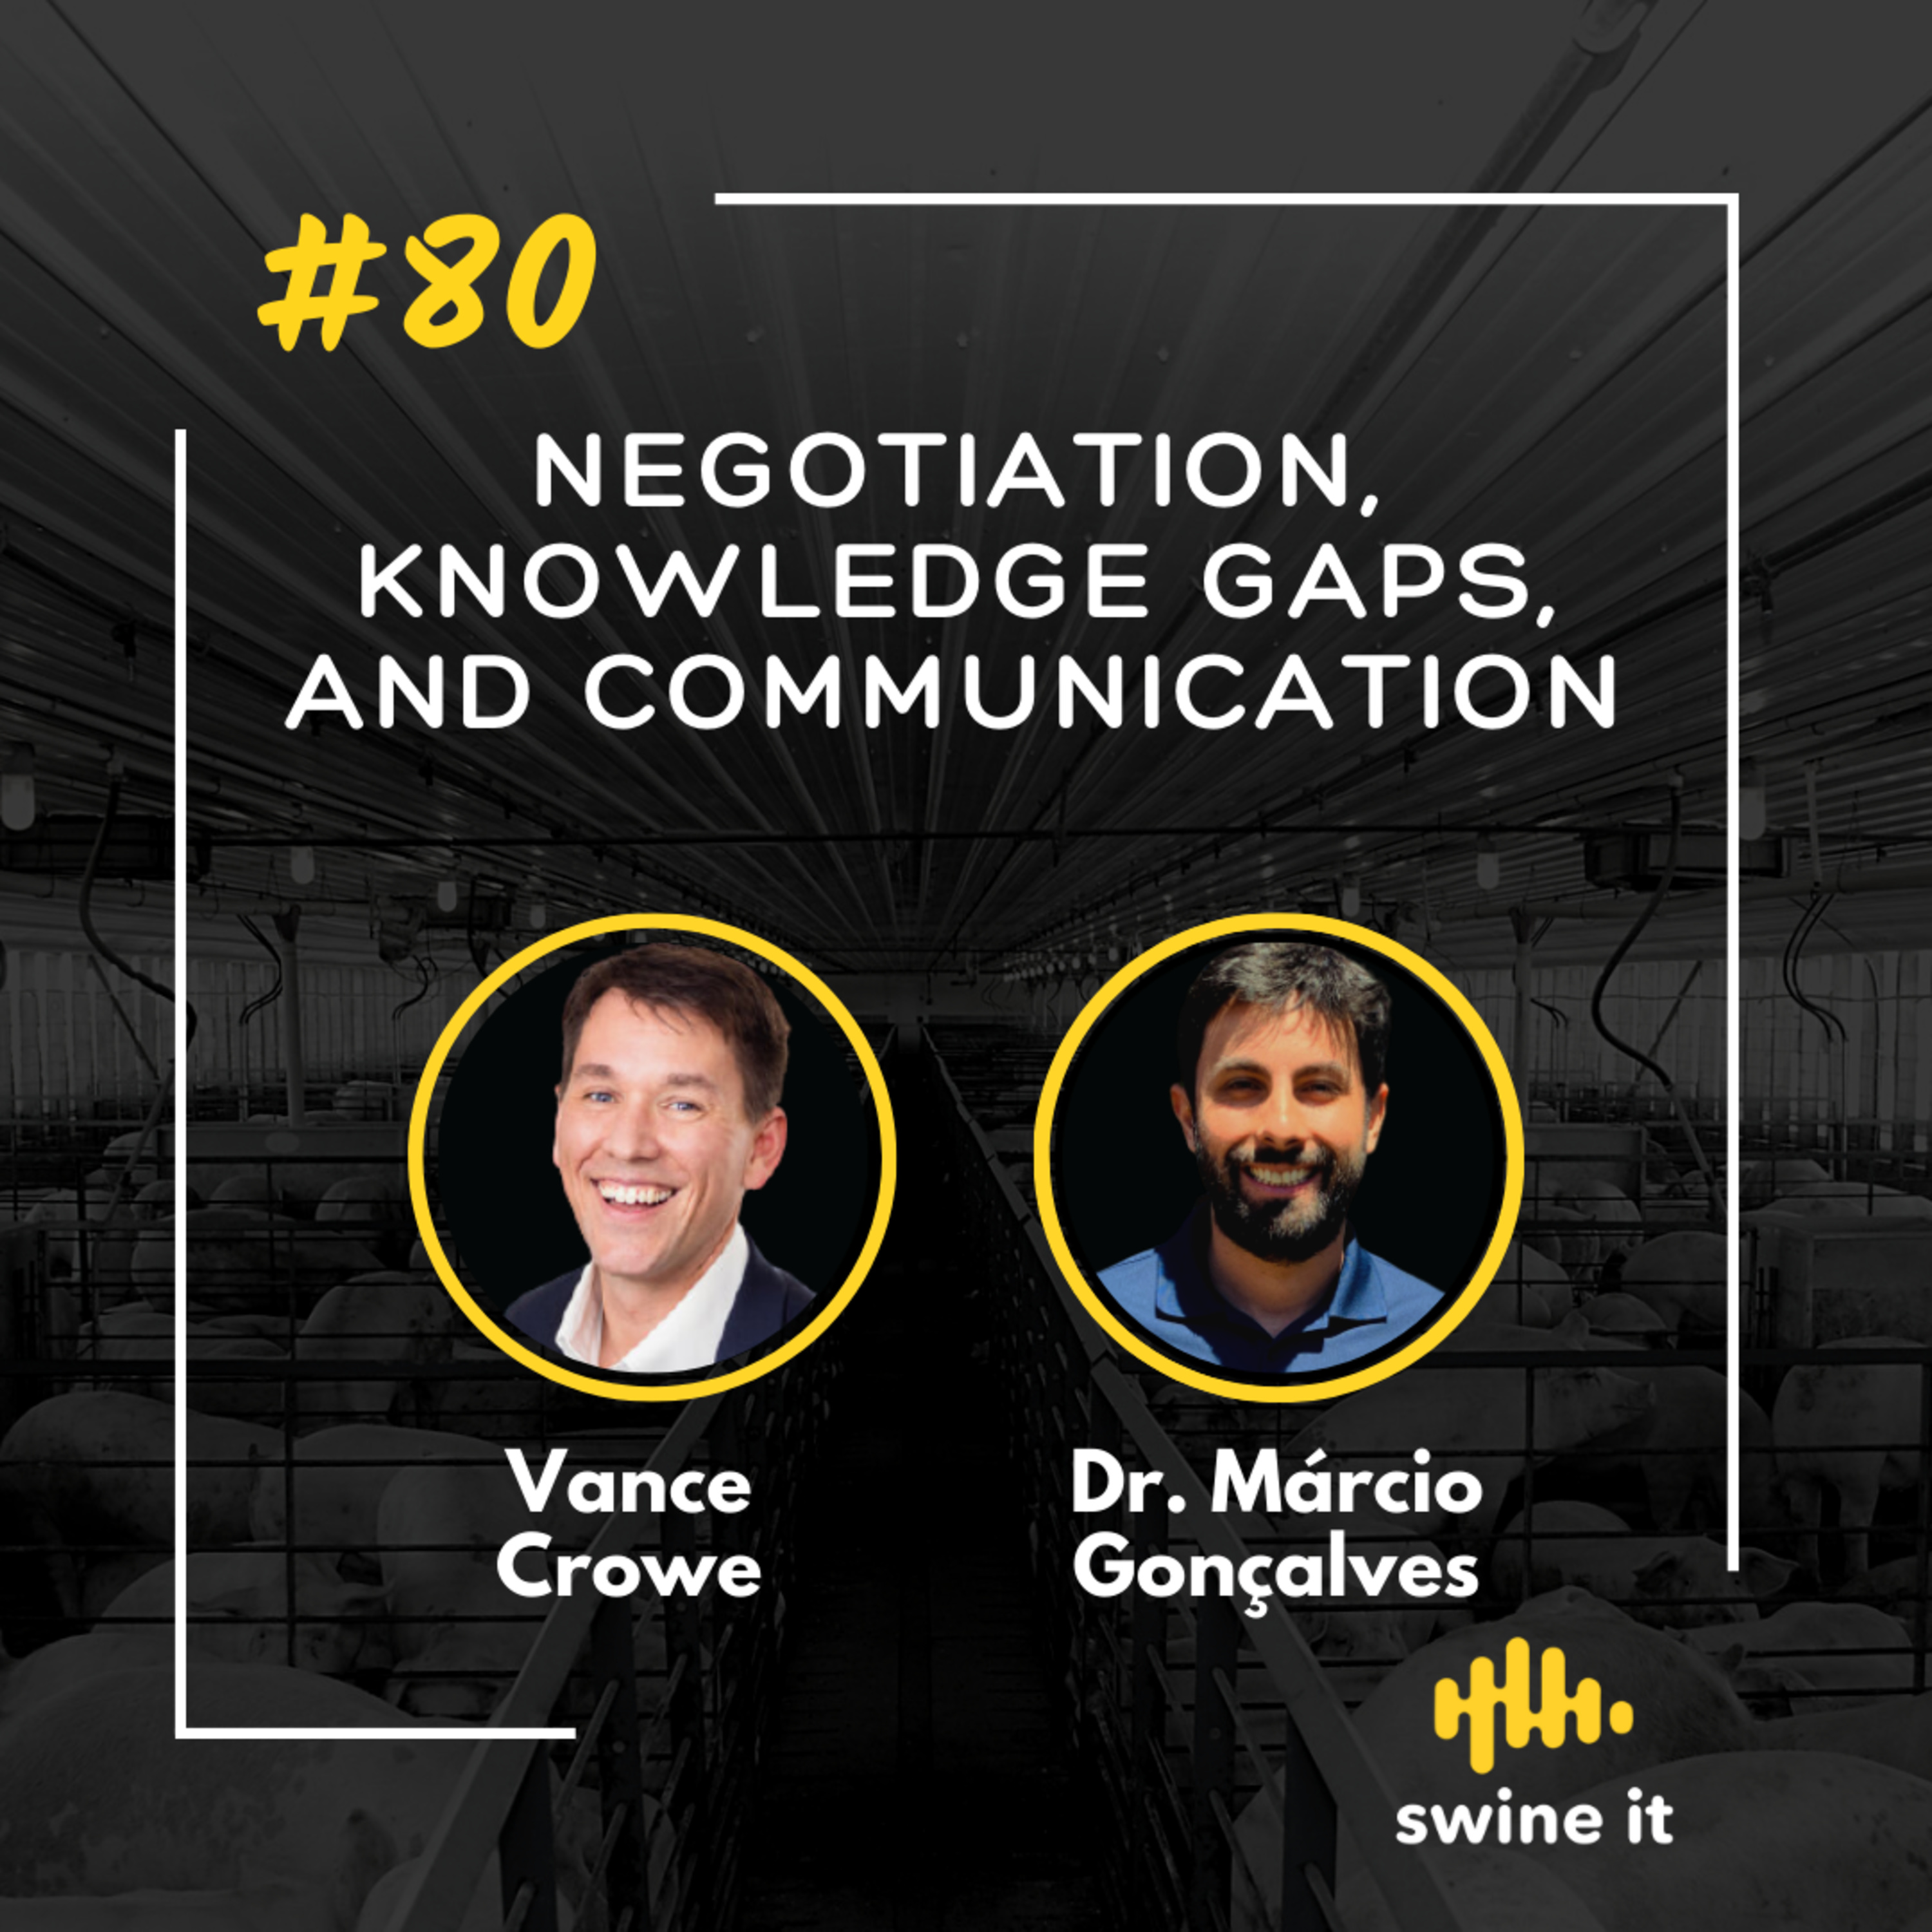 Negotiation, knowledge gaps, and communication - Vance Crowe